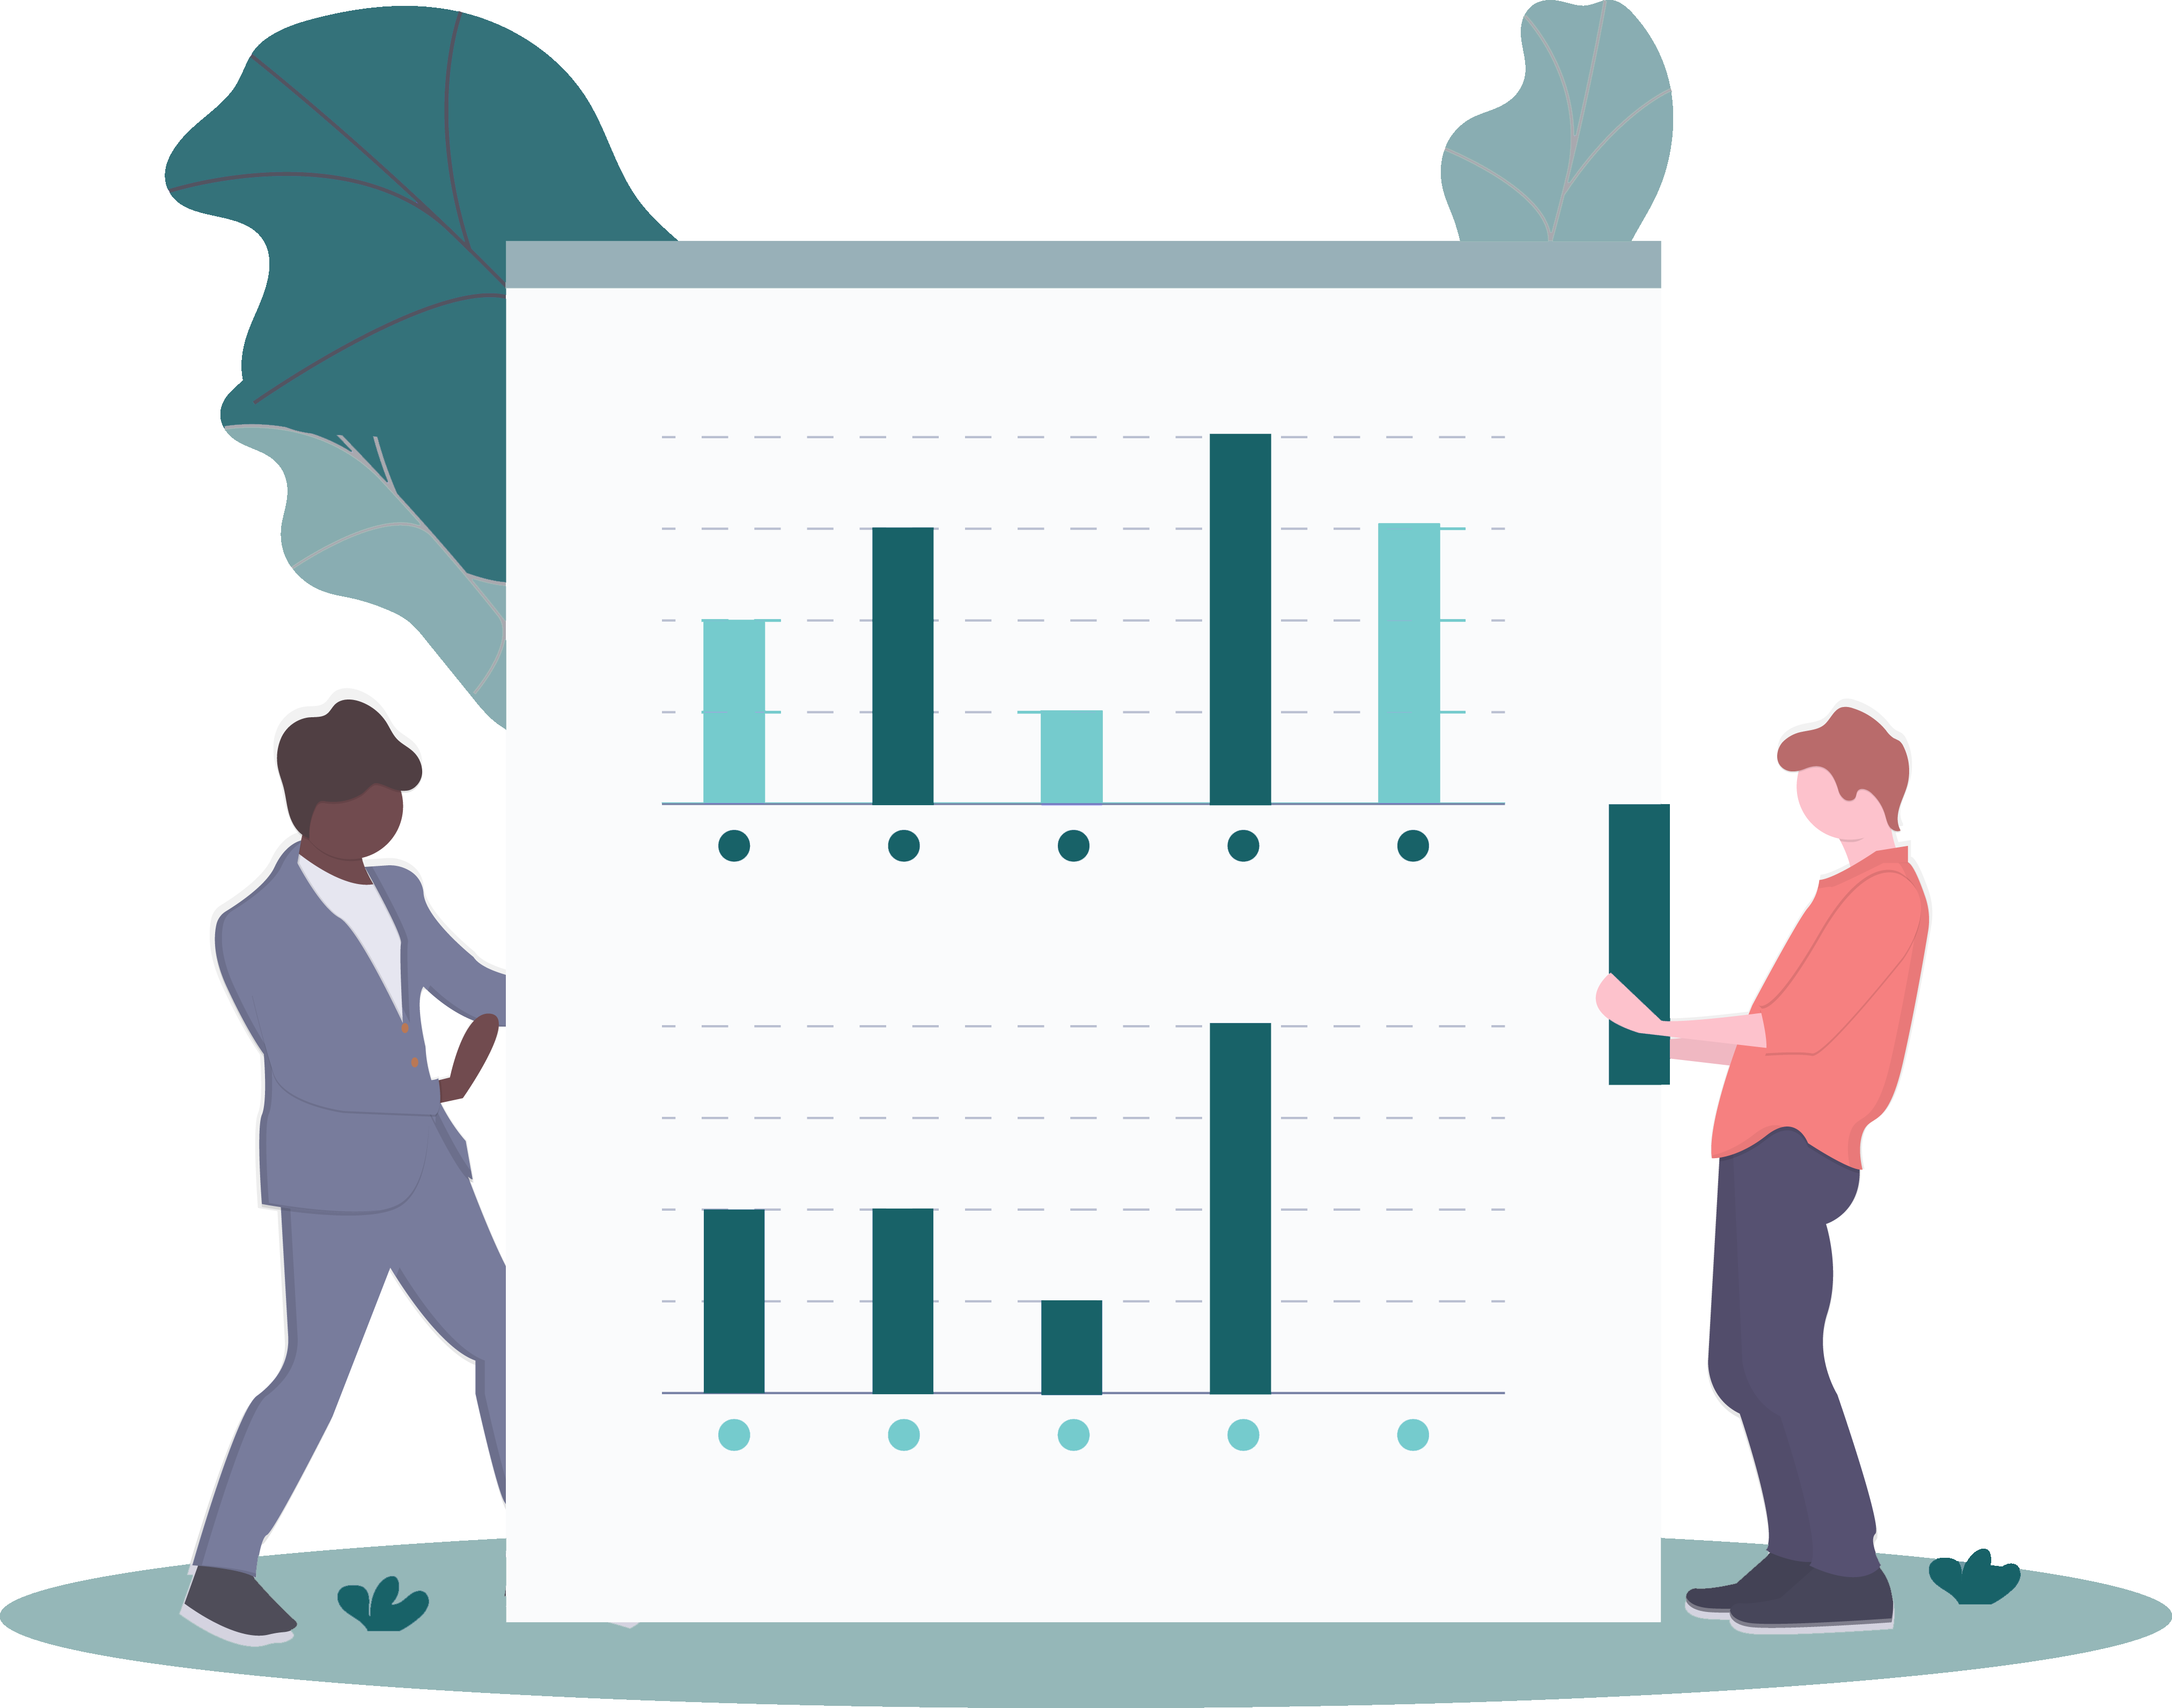 2 people holding up a graph - cartoon drawing